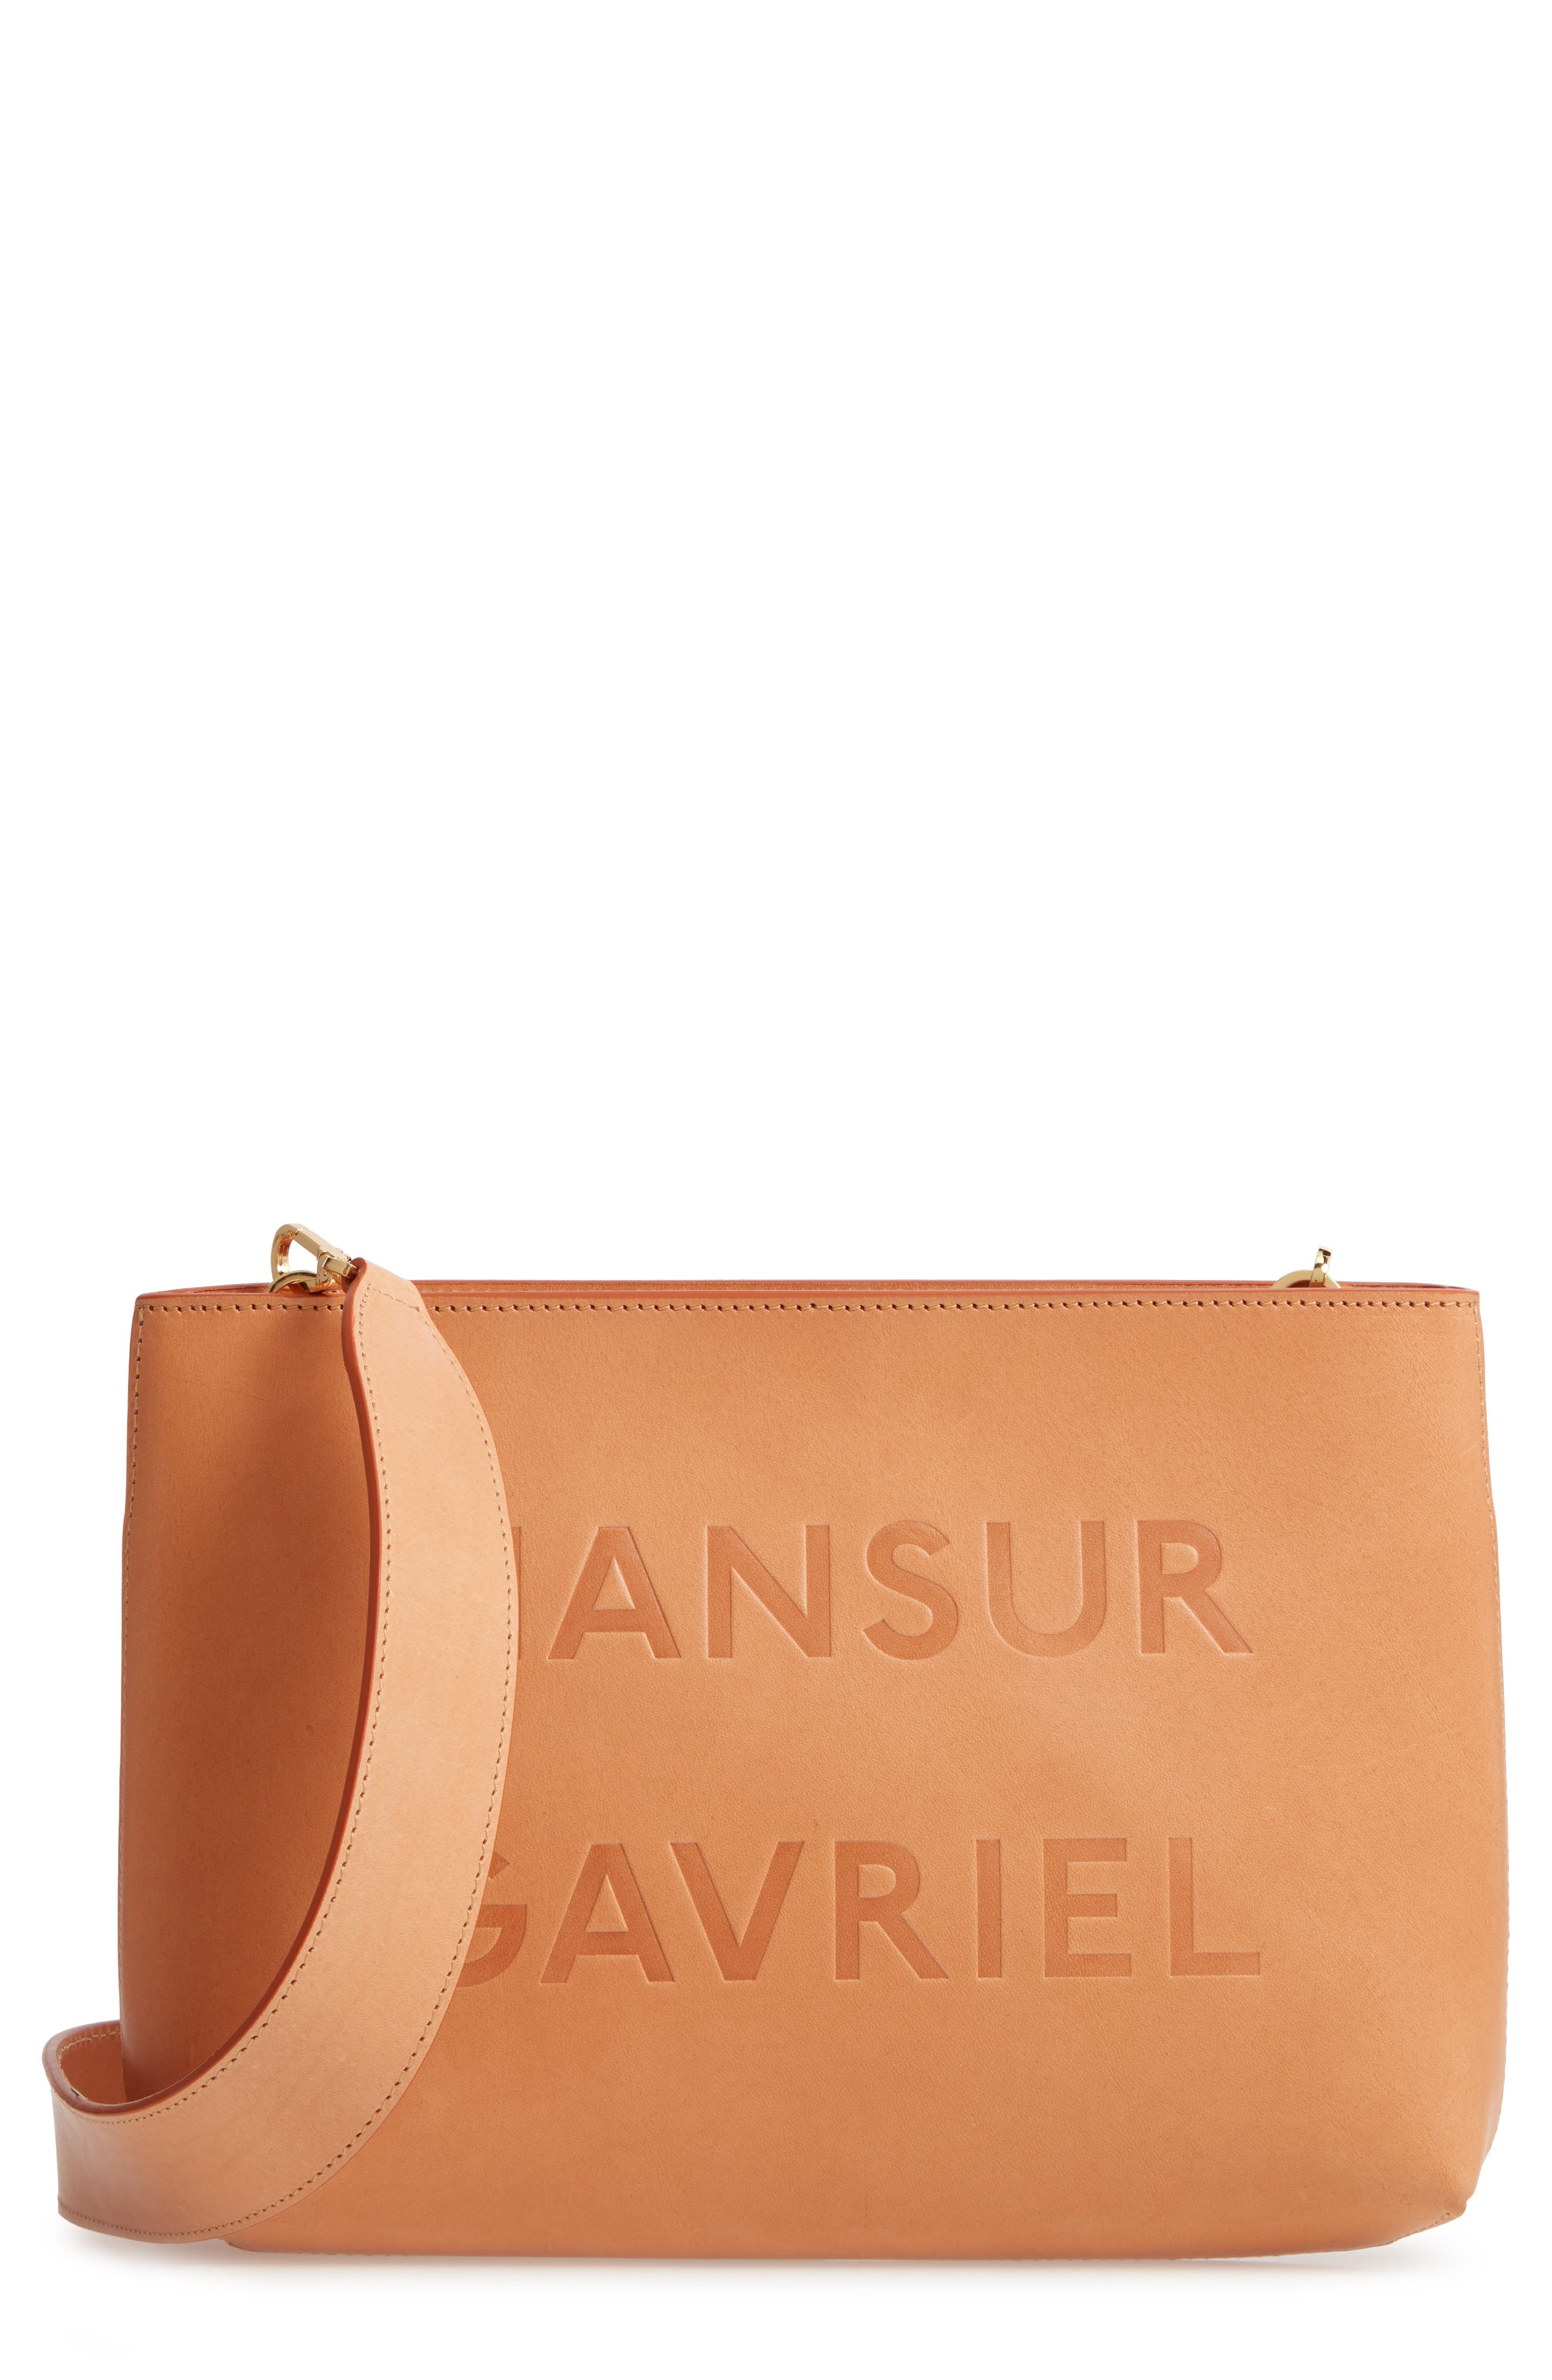 MANSUR GAVRIEL Logo Leather Crossbody Bag, Main, color, 250